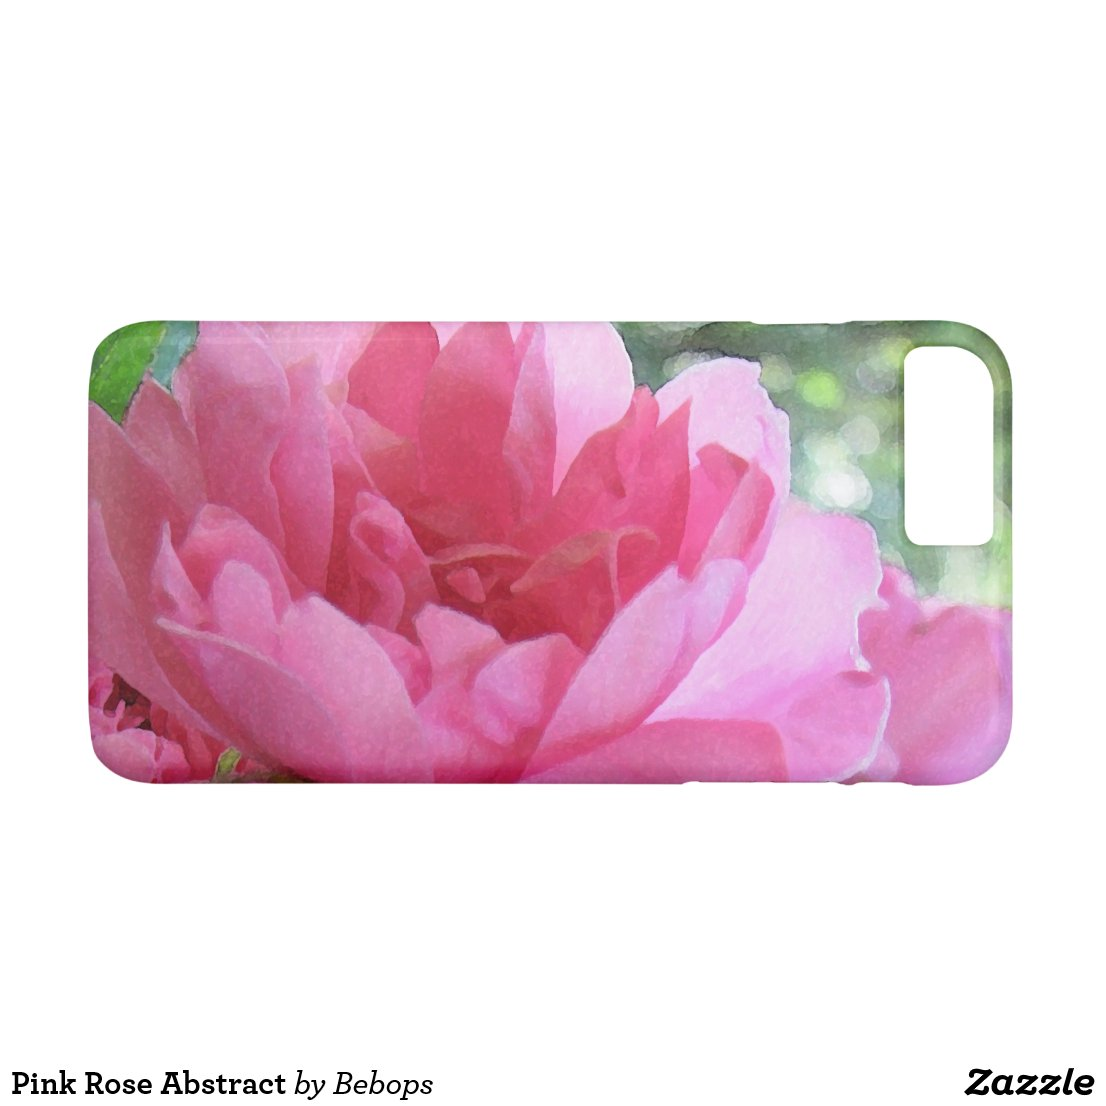 Pink Rose Abstract iPhone 7 Plus Case